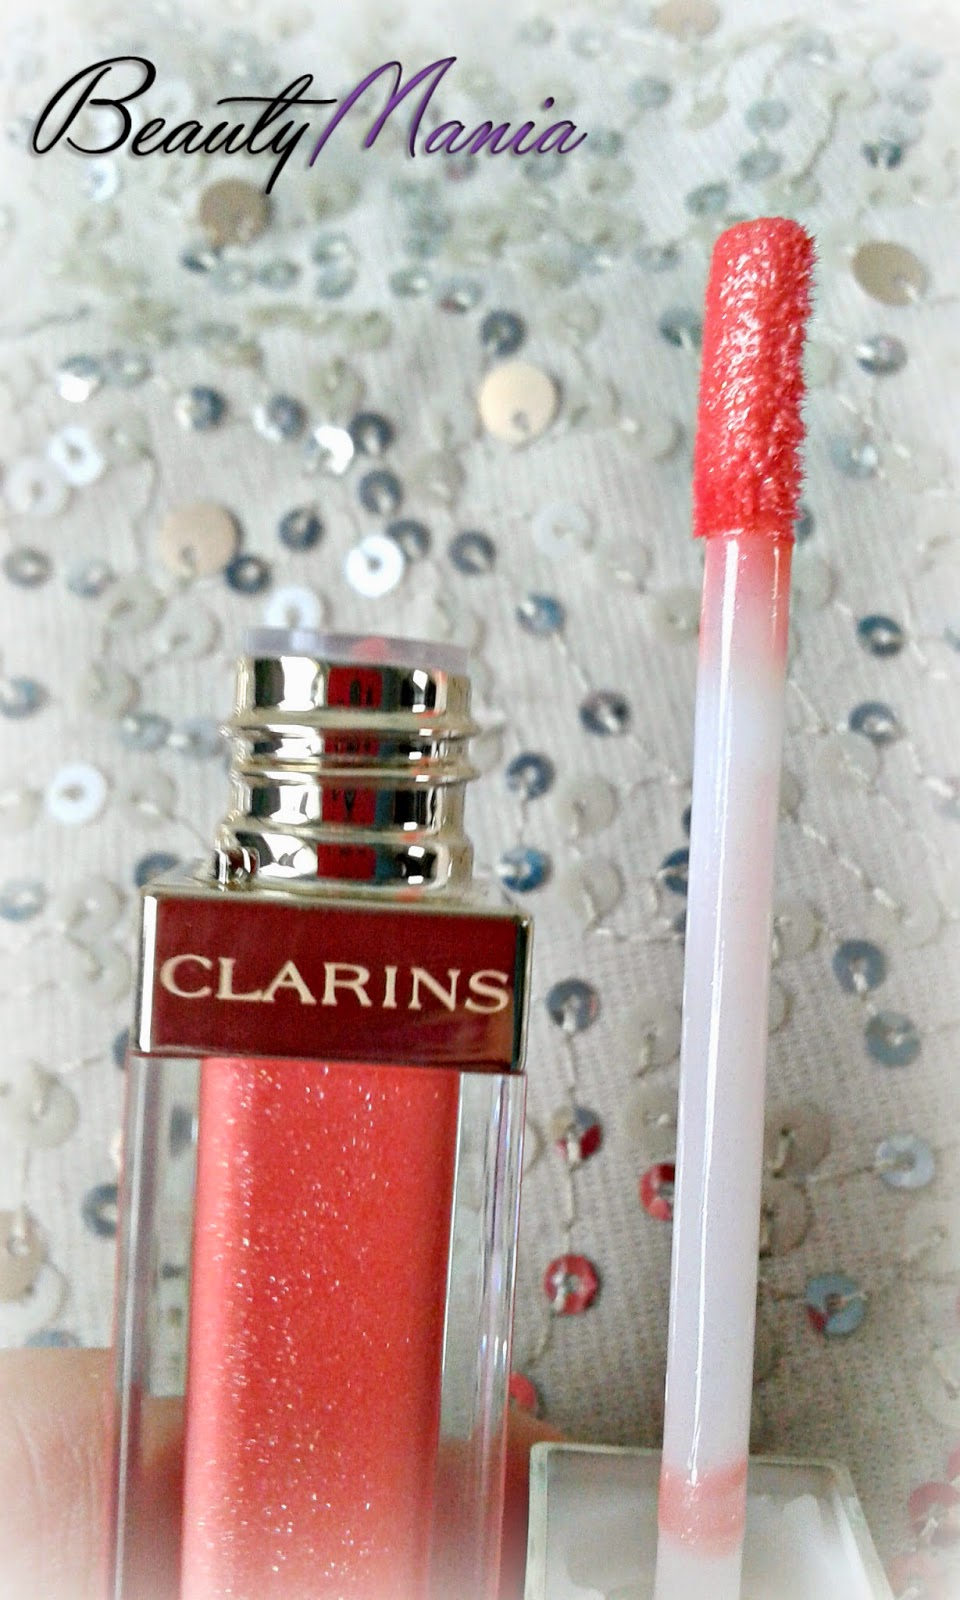 beauty mania clarins